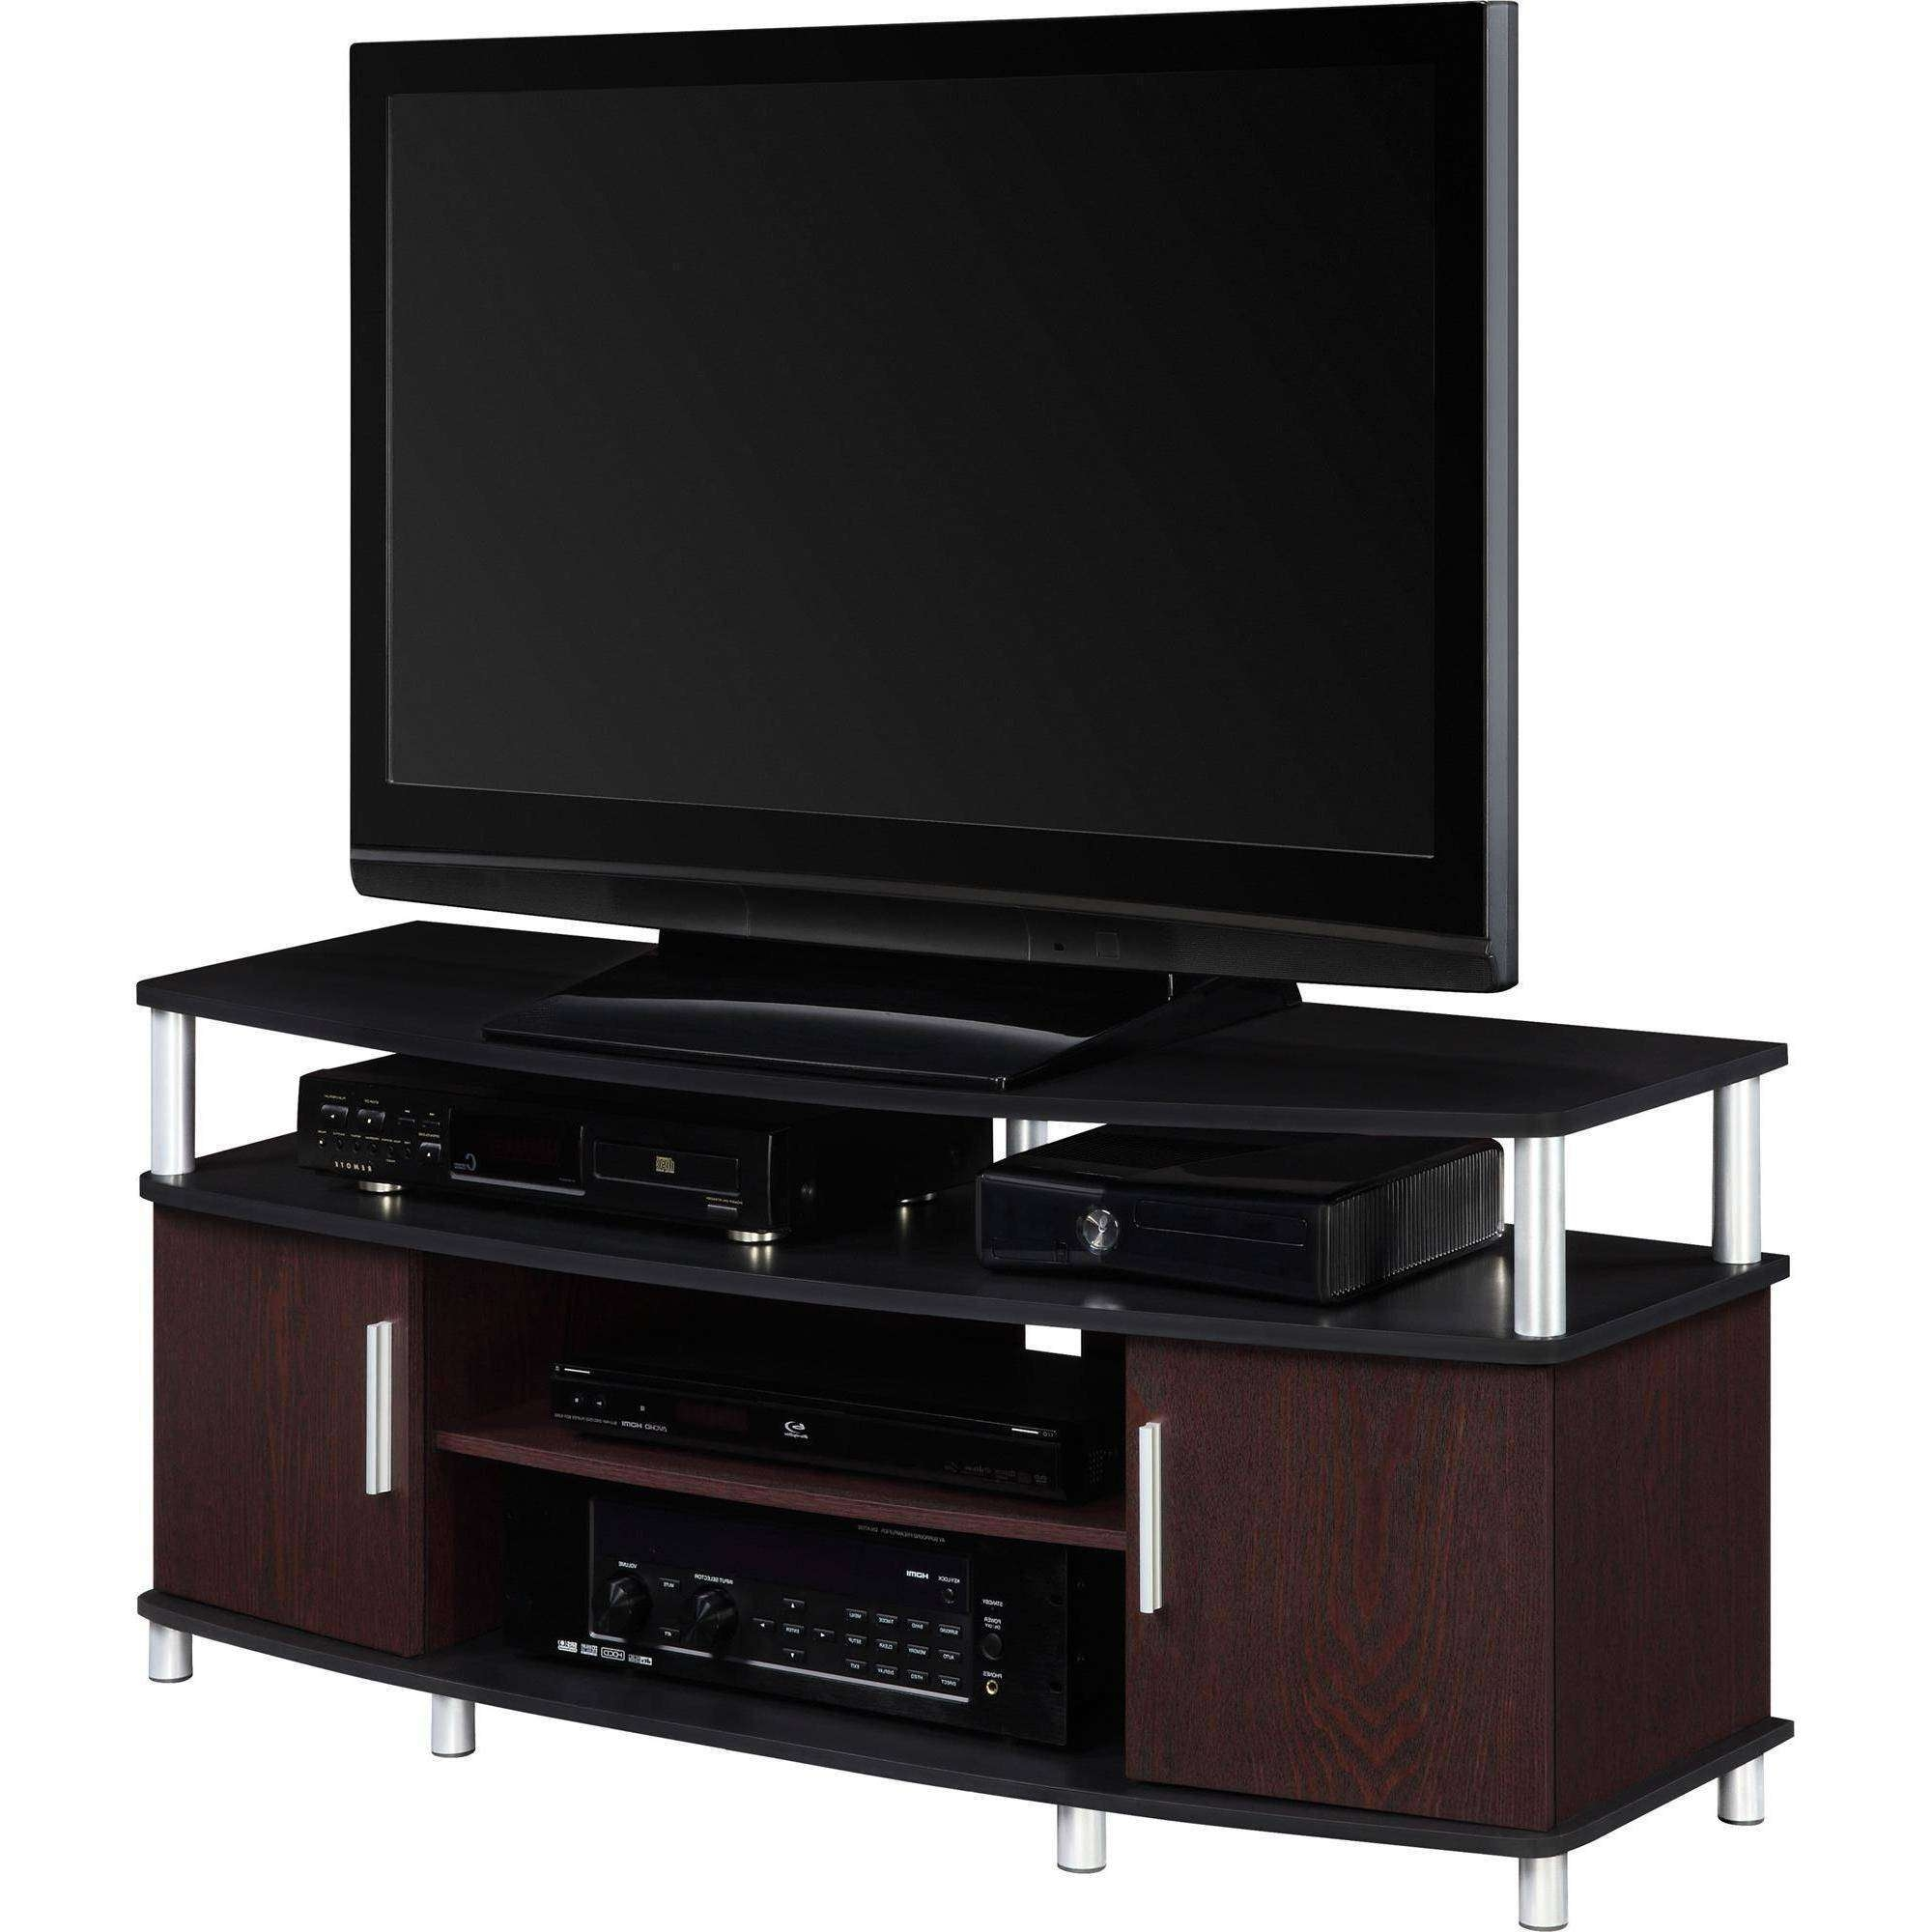 Tv : Tv Stands 7 Best Selling Amazing Unique Tv Stands For Flat With Unique Tv Stands For Flat Screens (View 9 of 20)